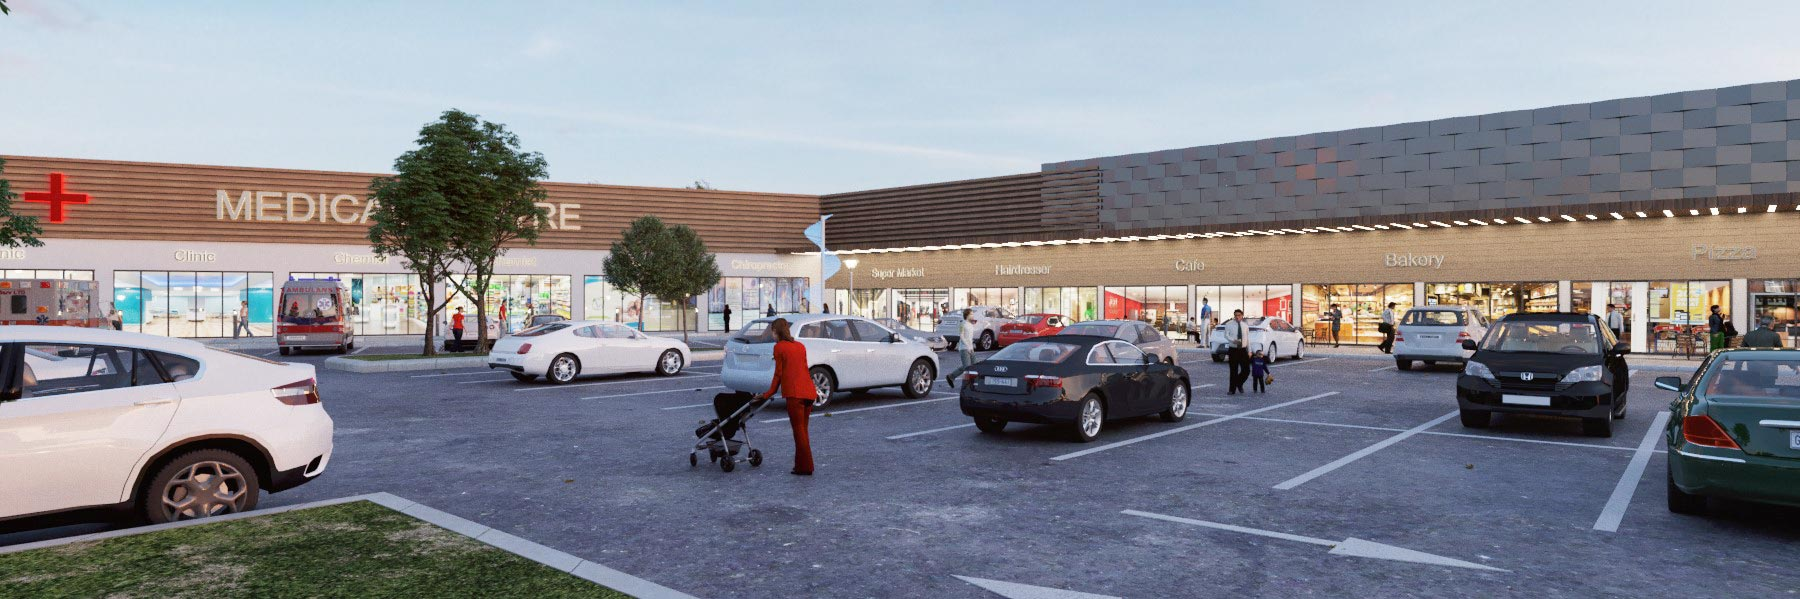 Bahrs Square | Artist's impression of the commercial development